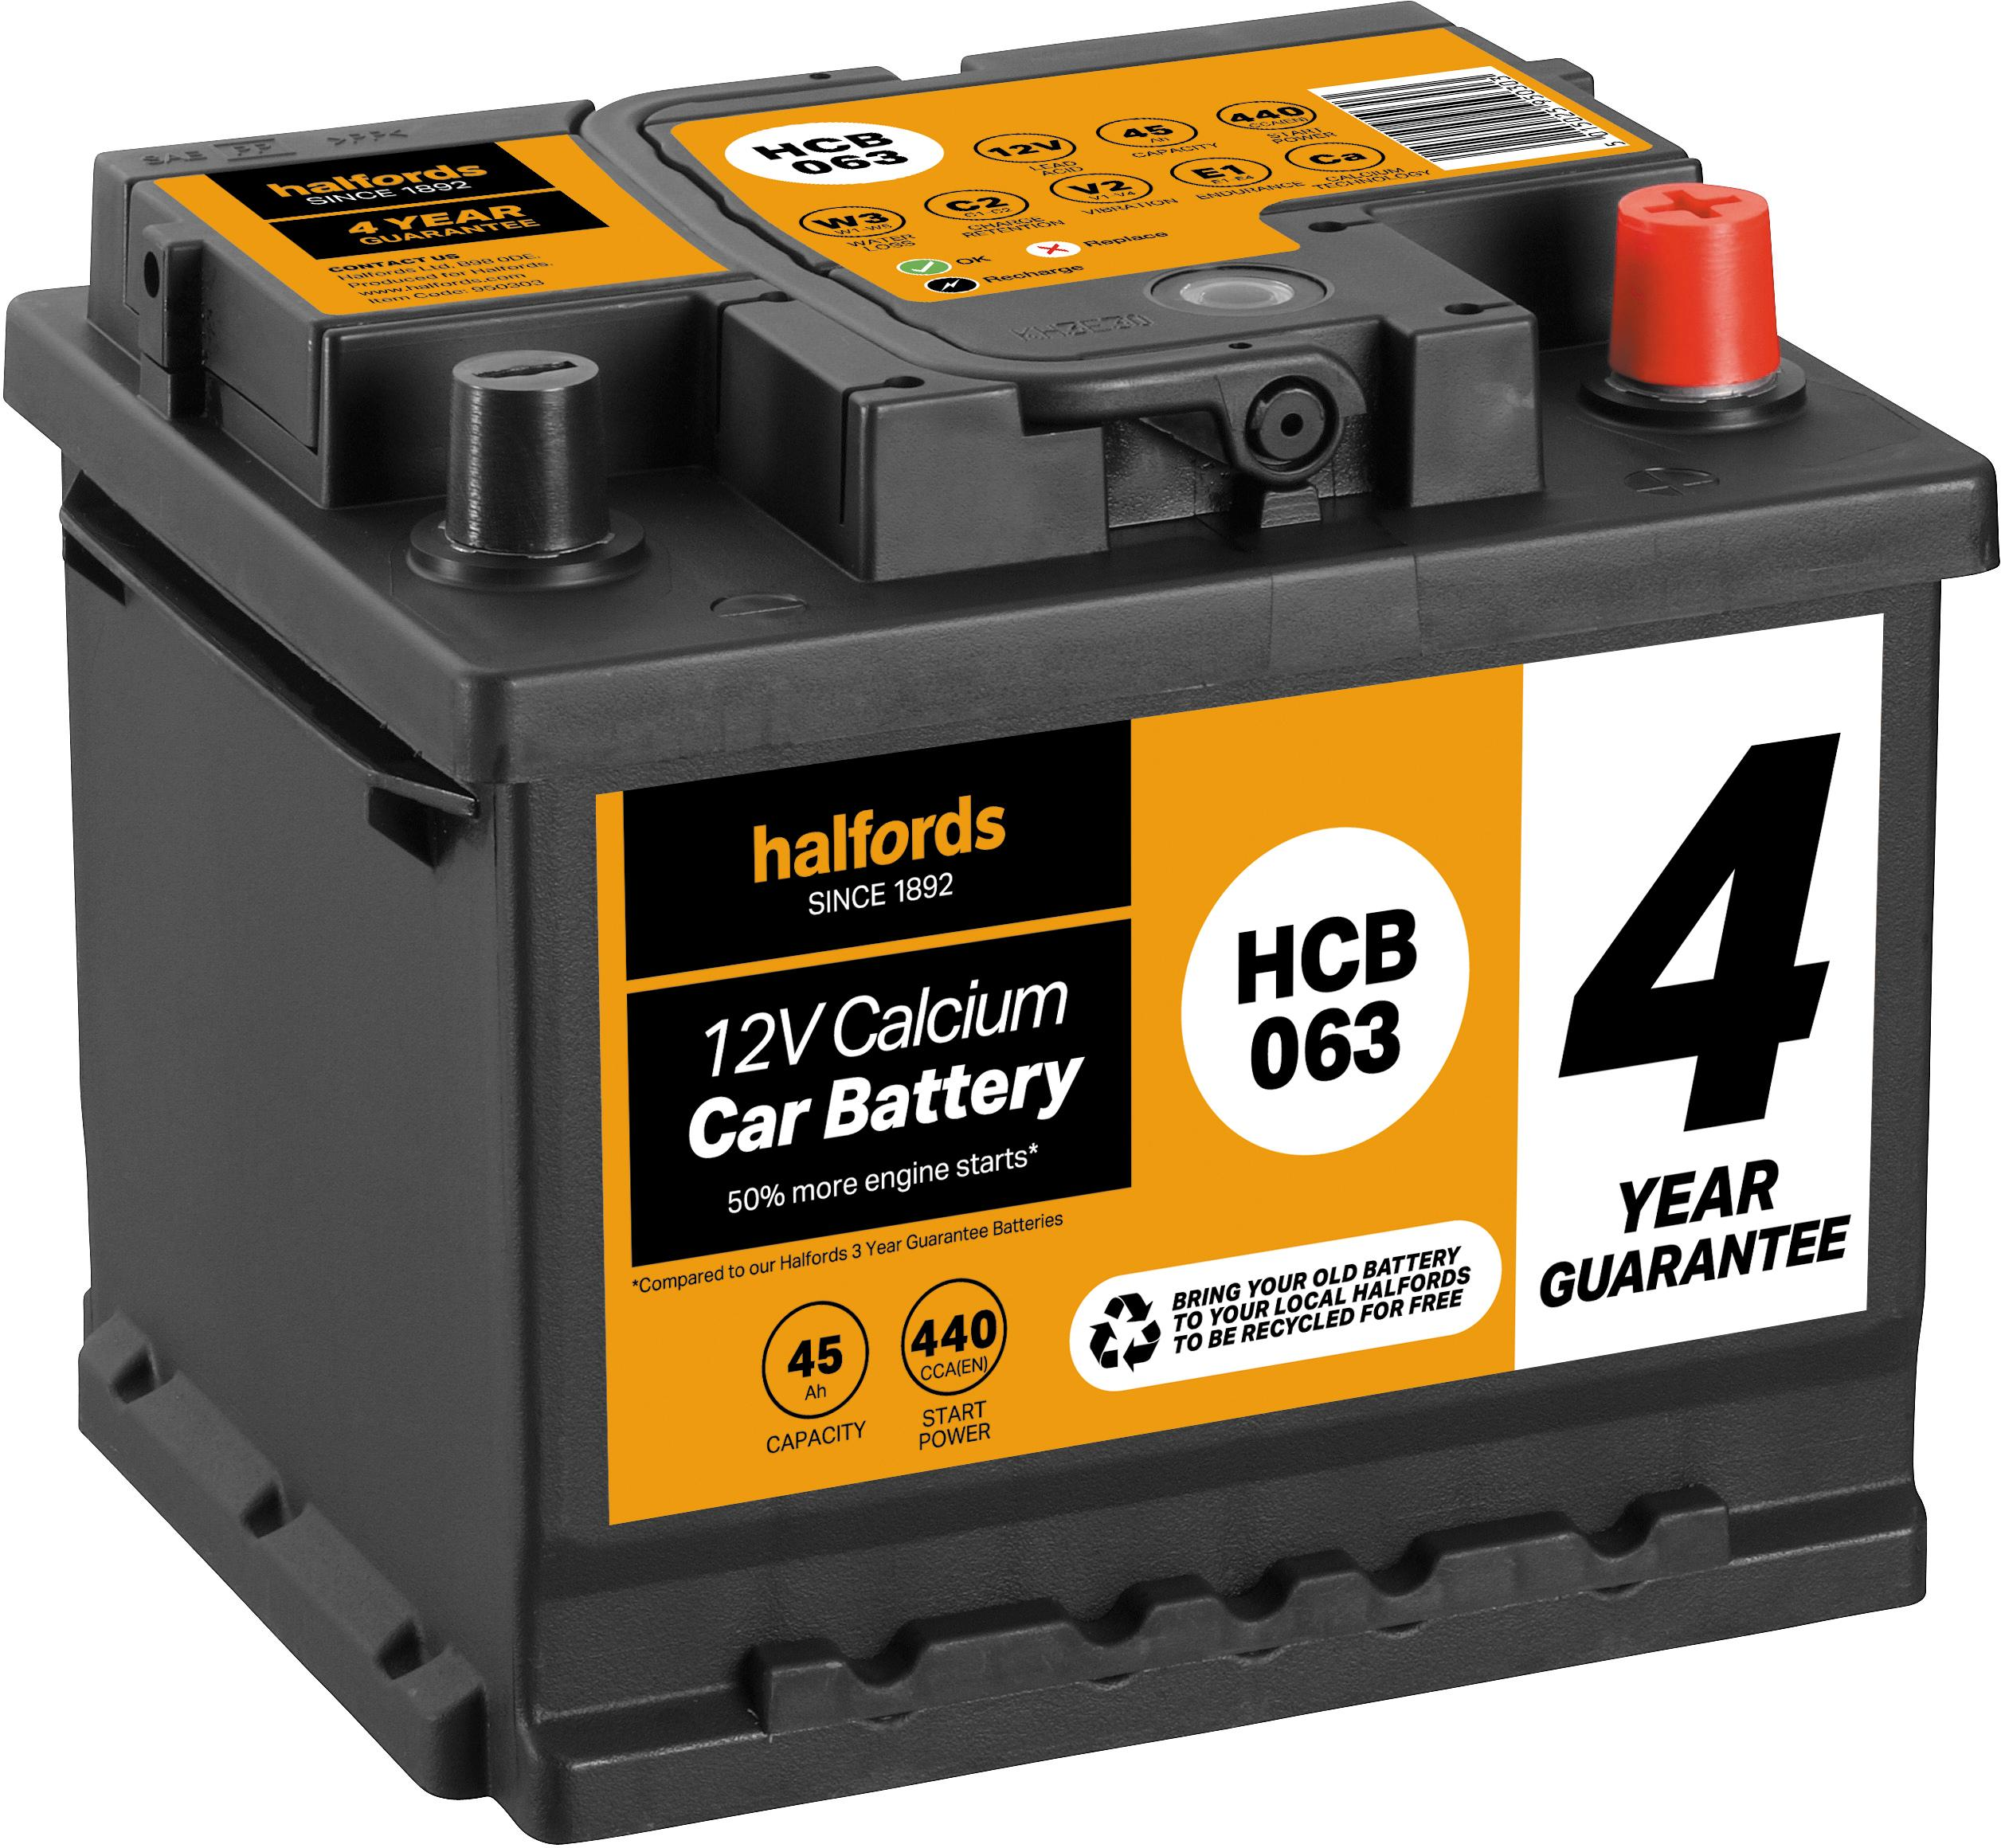 Titanium 334 / 250 Sealed Car Battery 12V 91Ah - Fast & Free Delivery